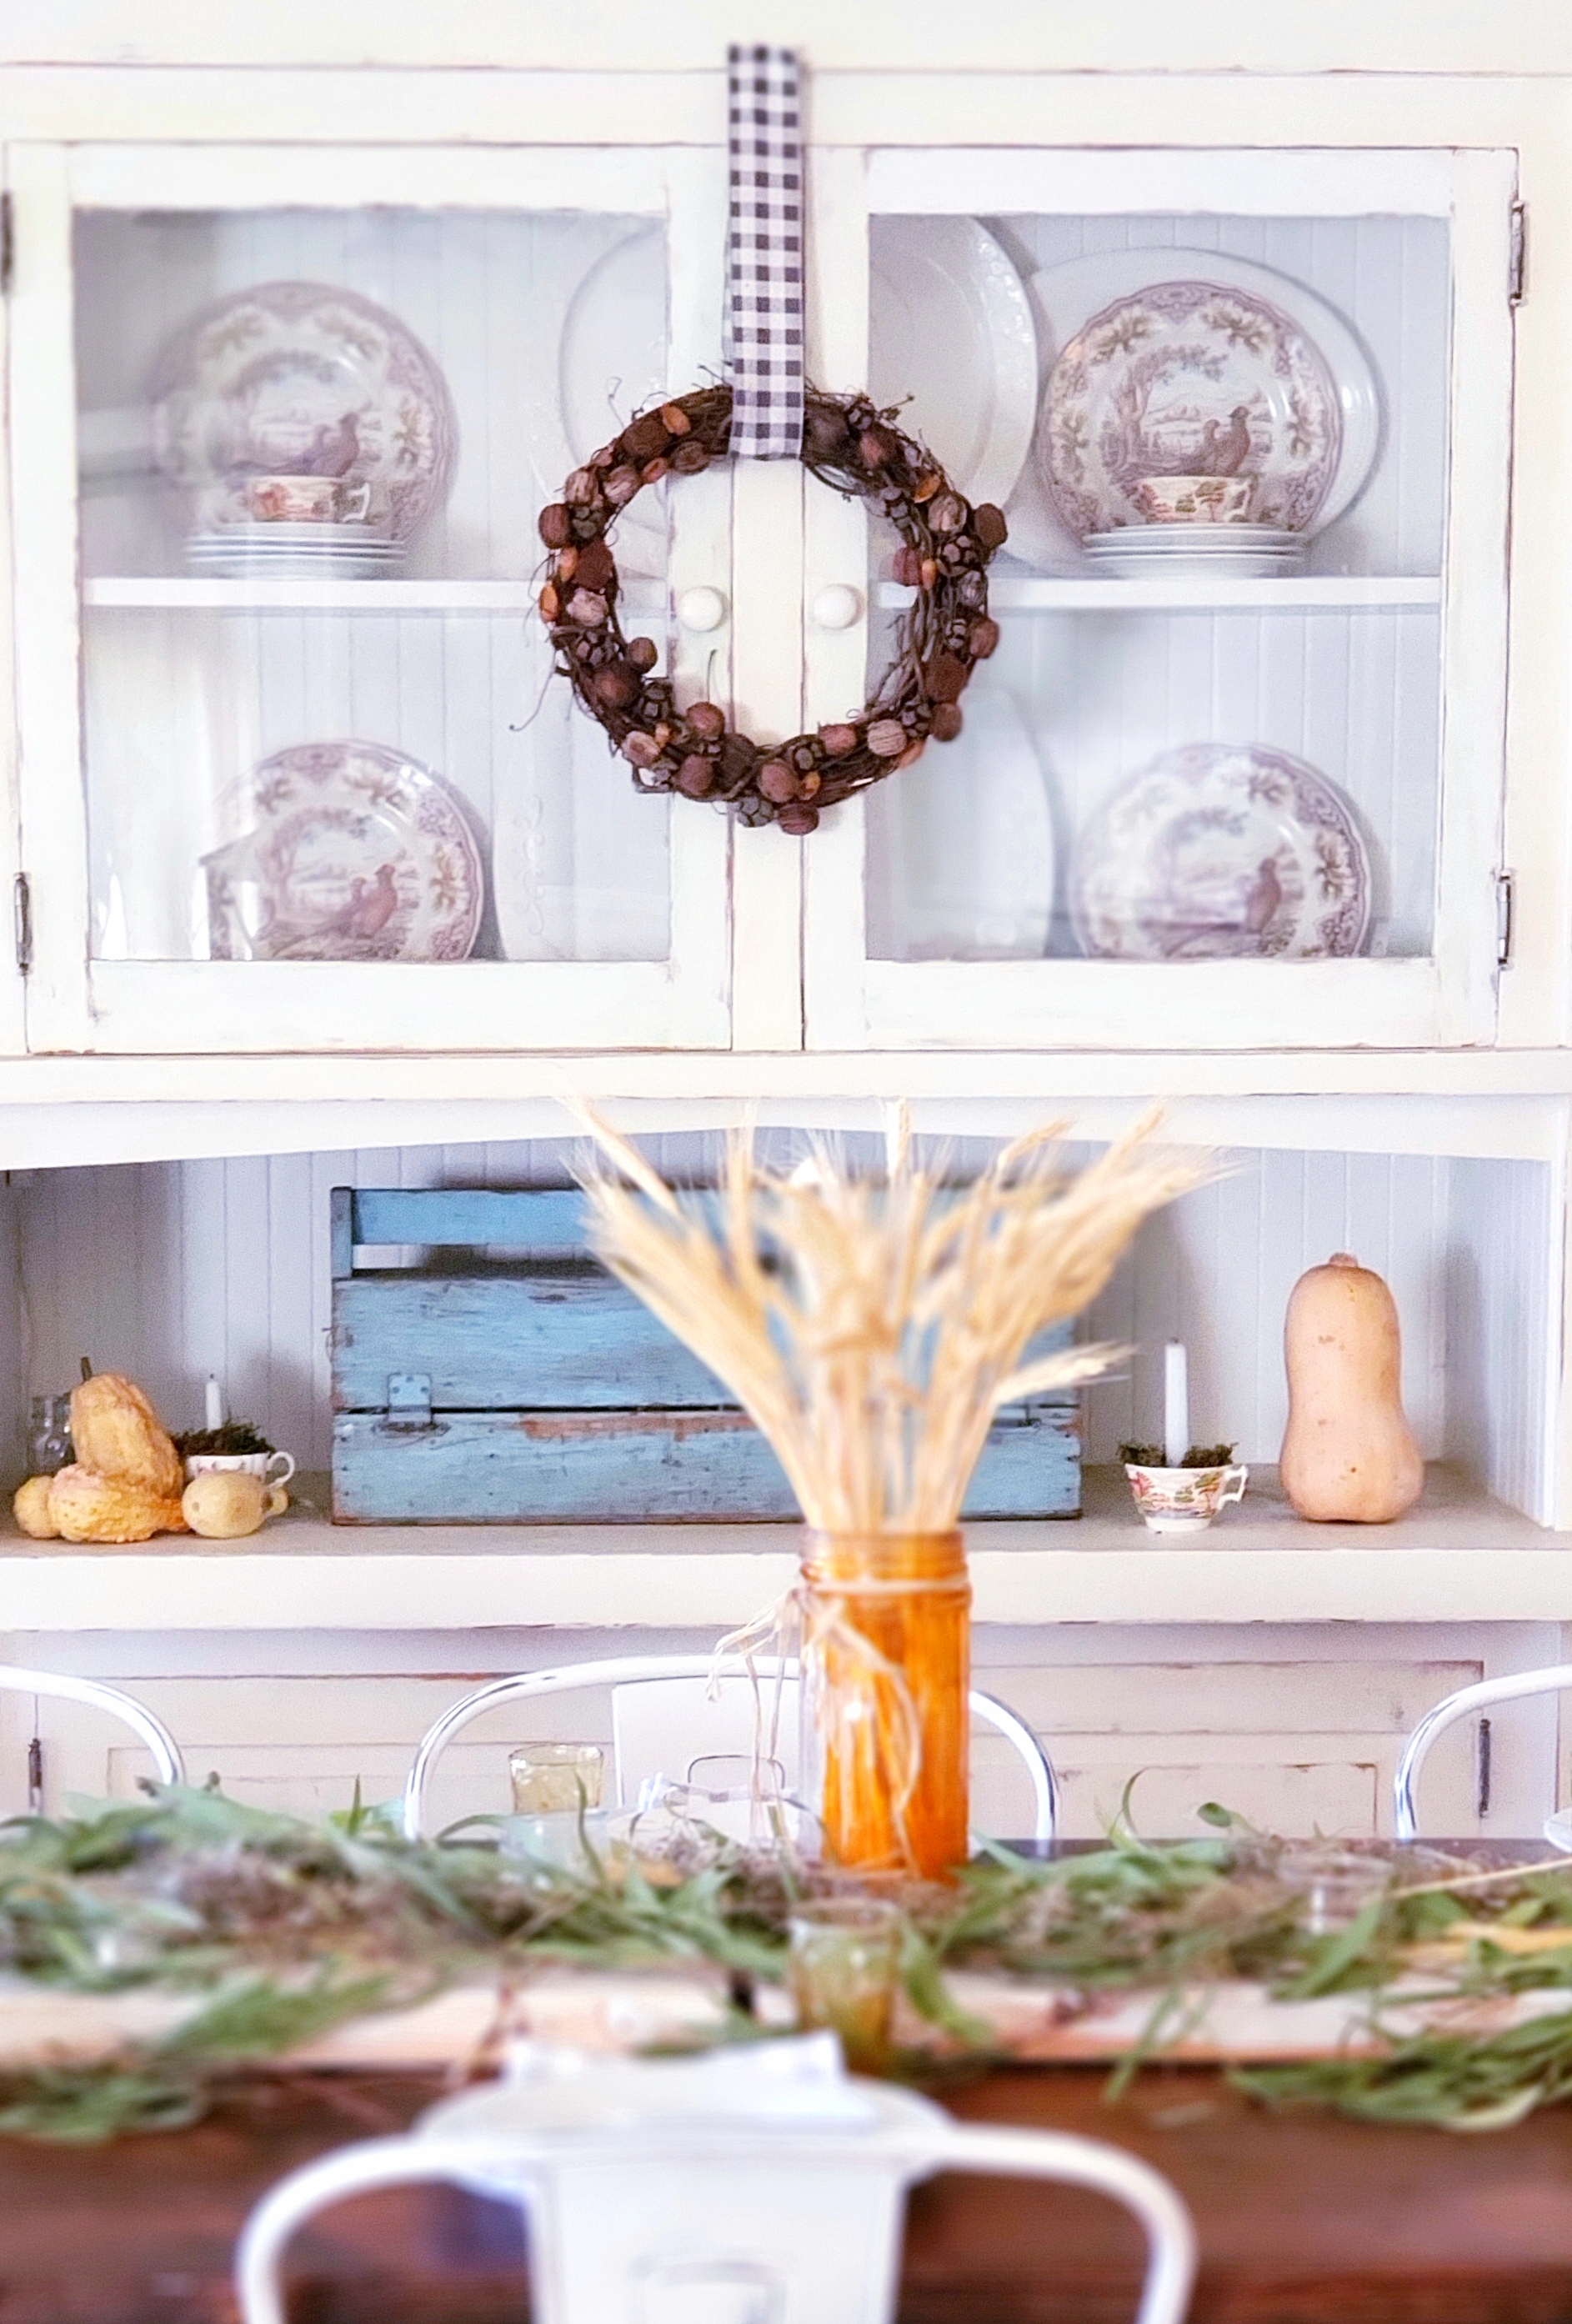 Fresh Fall Look with Nut Wreath